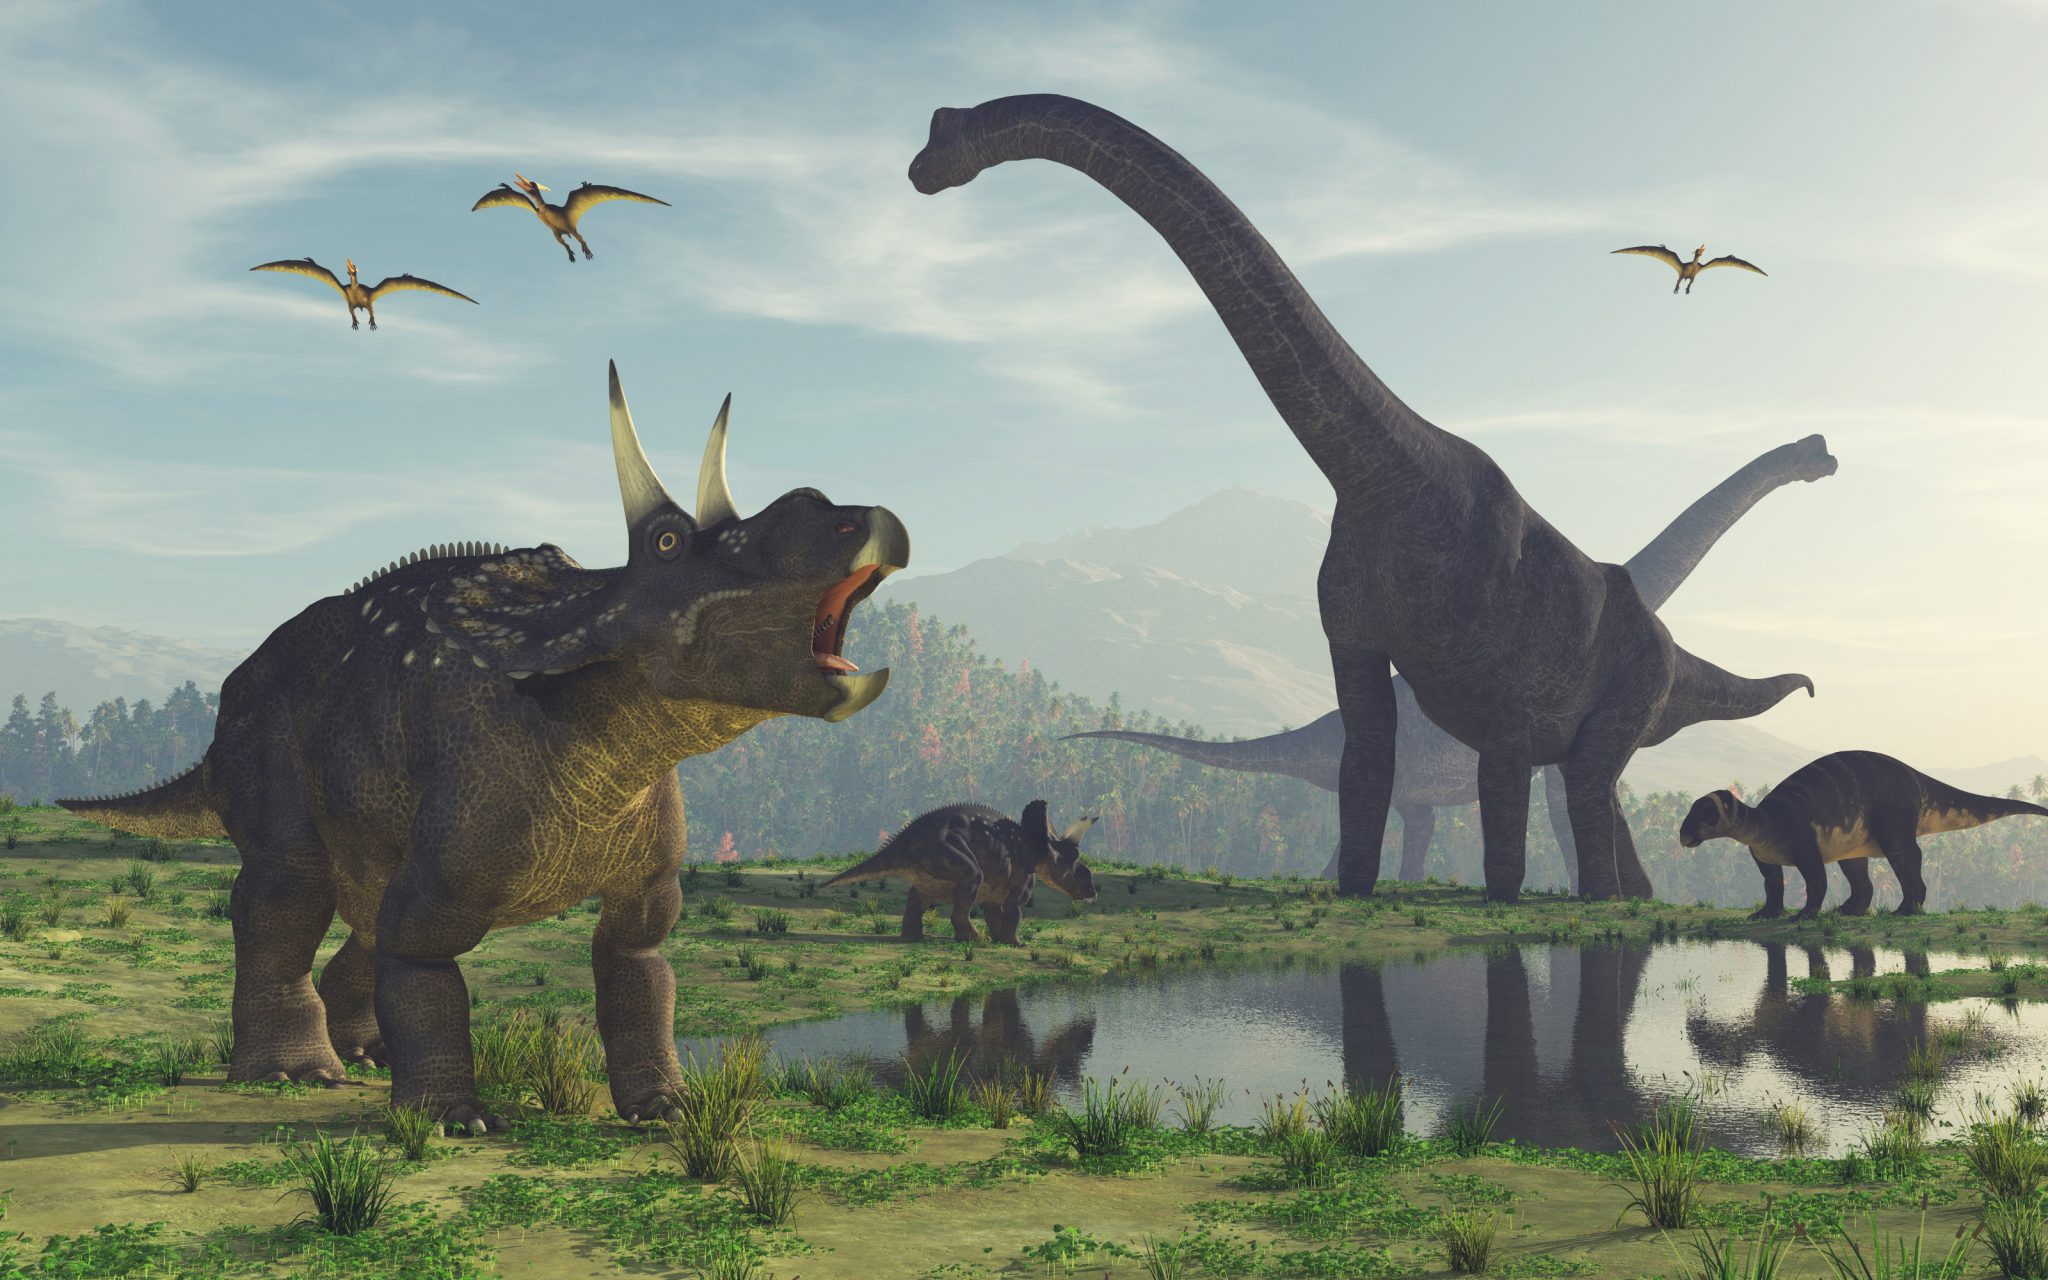 Why Did Some Dinosaurs Have Cancer?